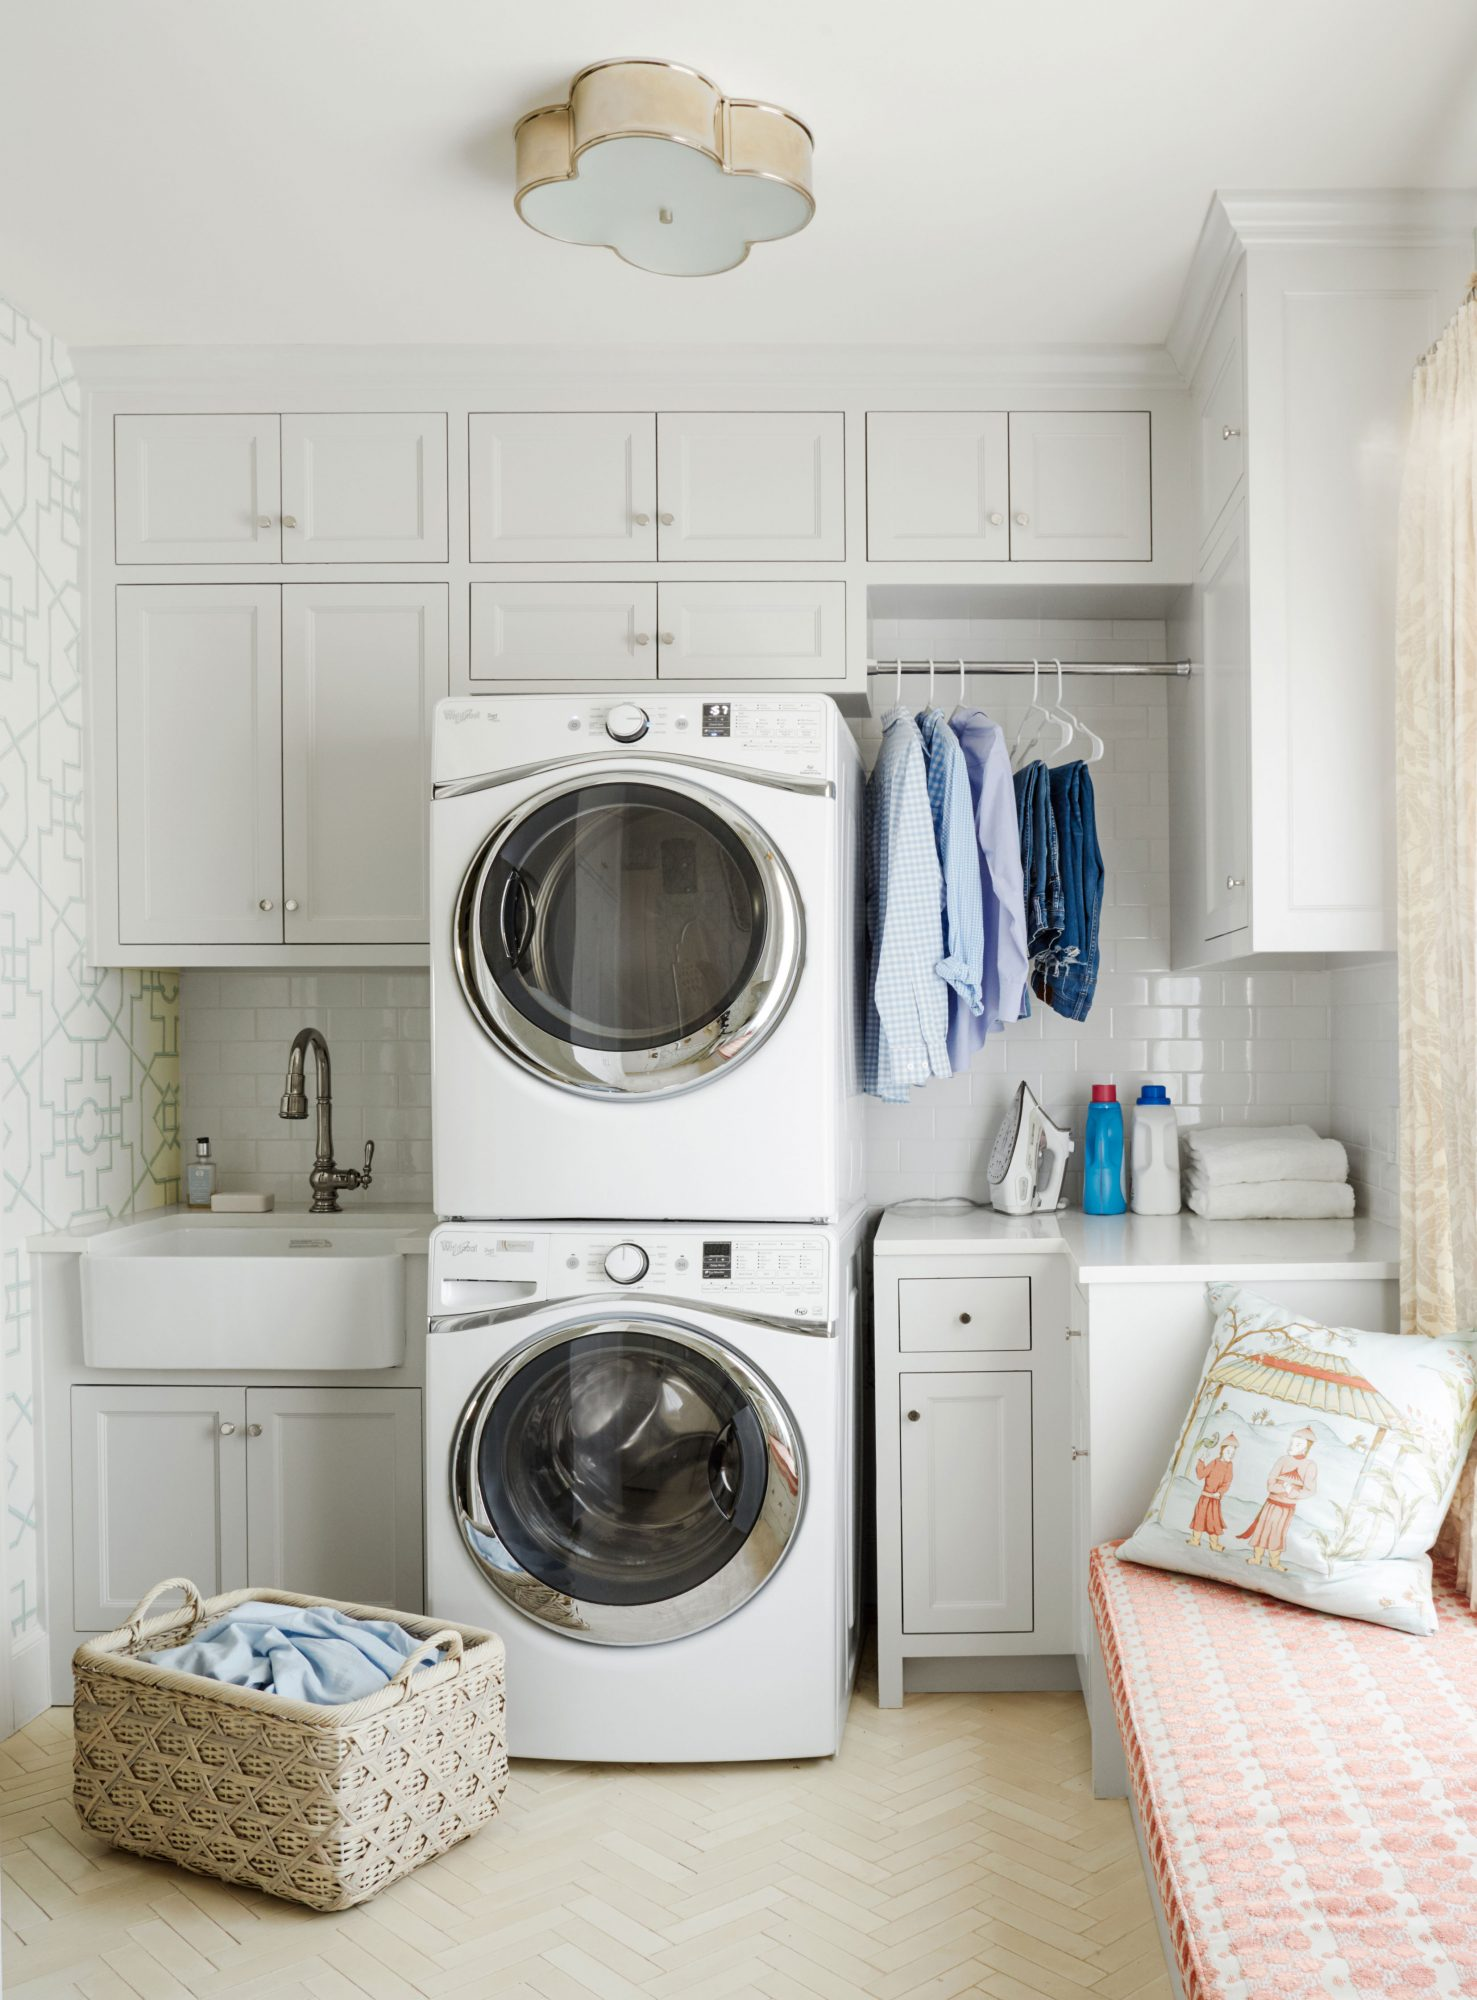 Laundry Room with stacked washer and dryer and shelving